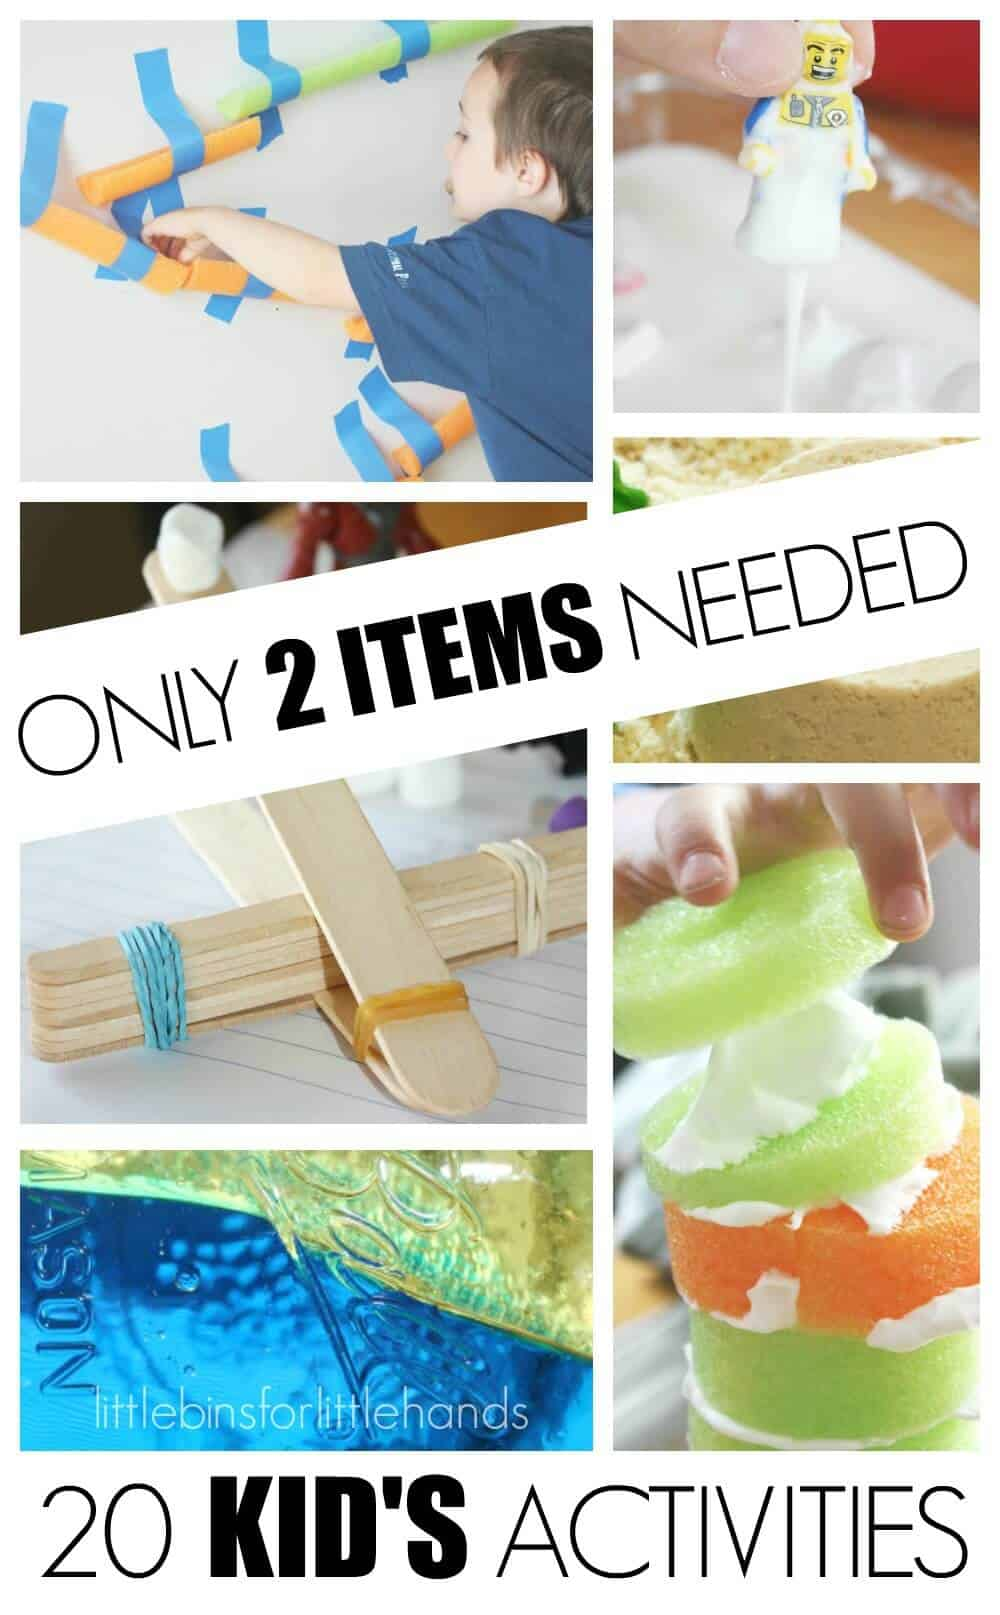 20 Kids Activities 2 Item Activities for Play